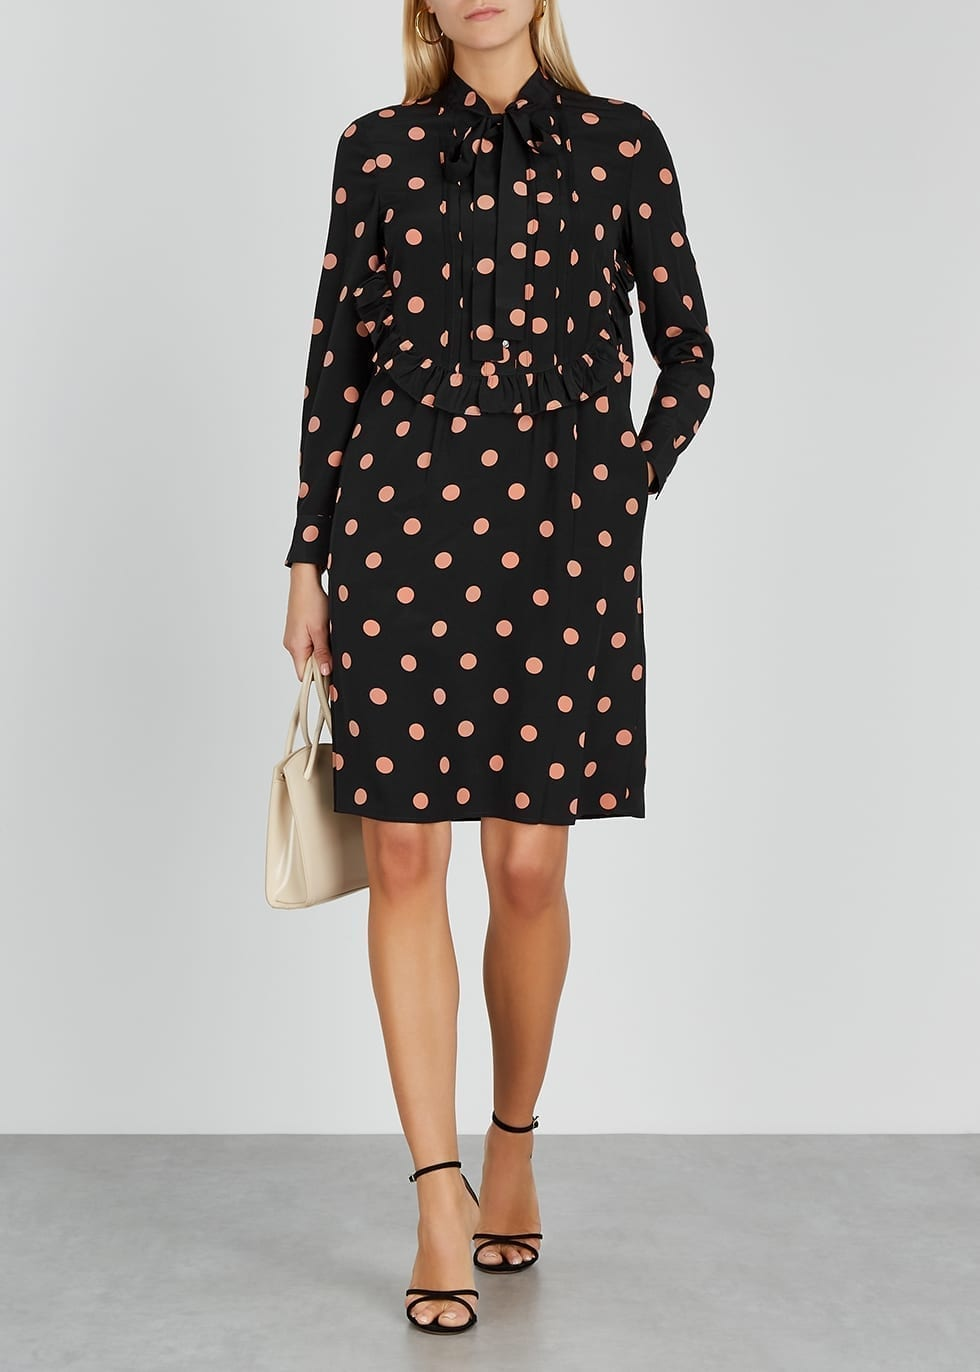 TORY BURCH Black Polka-dot Silk Crepe De Chine Dress